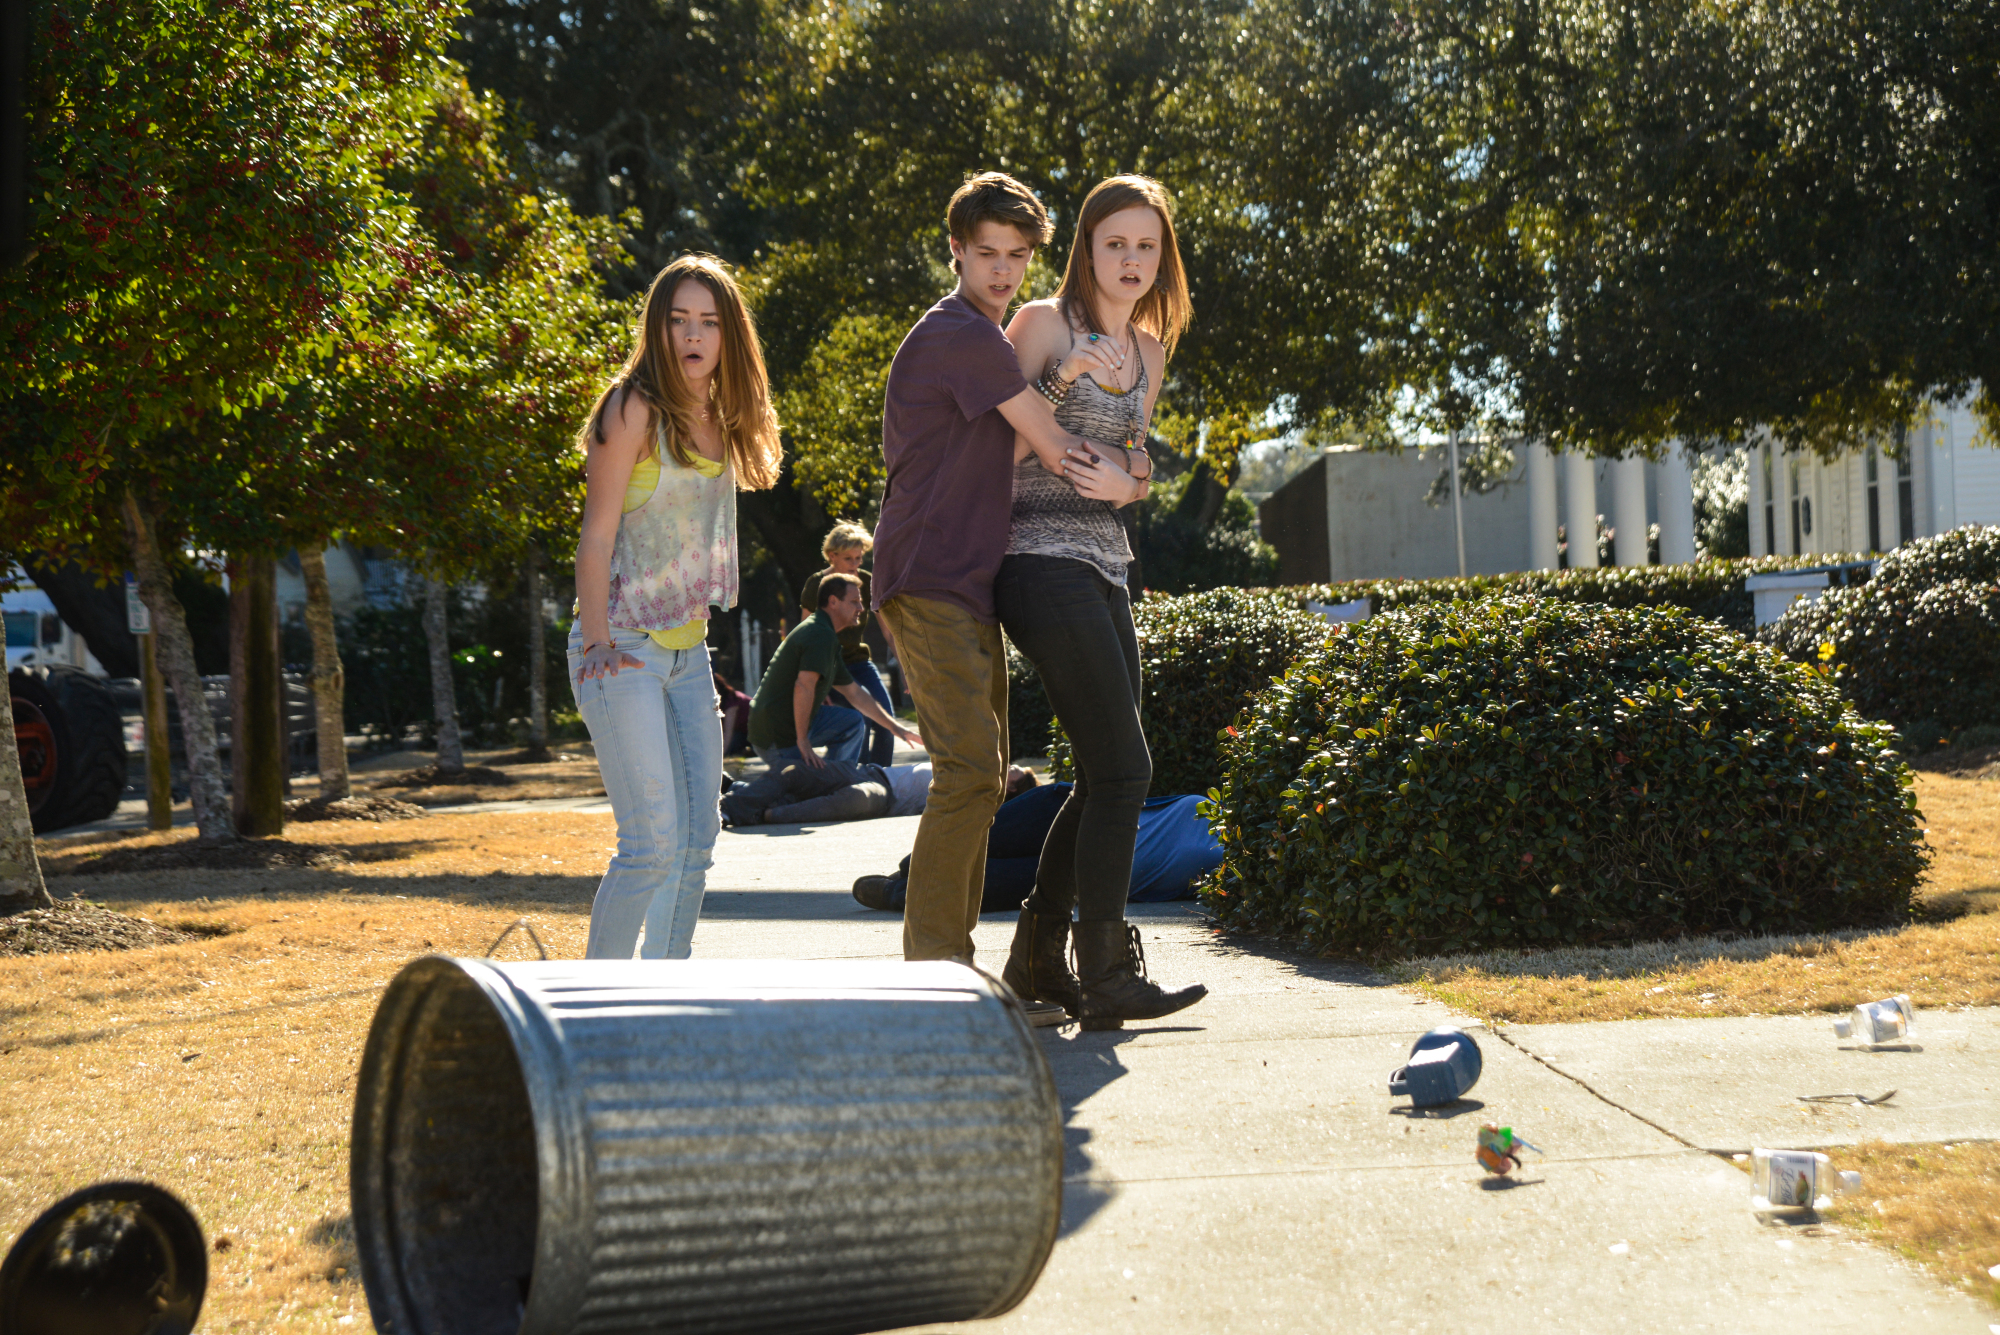 Season 2 Premiere - Under The Dome - CBS.com